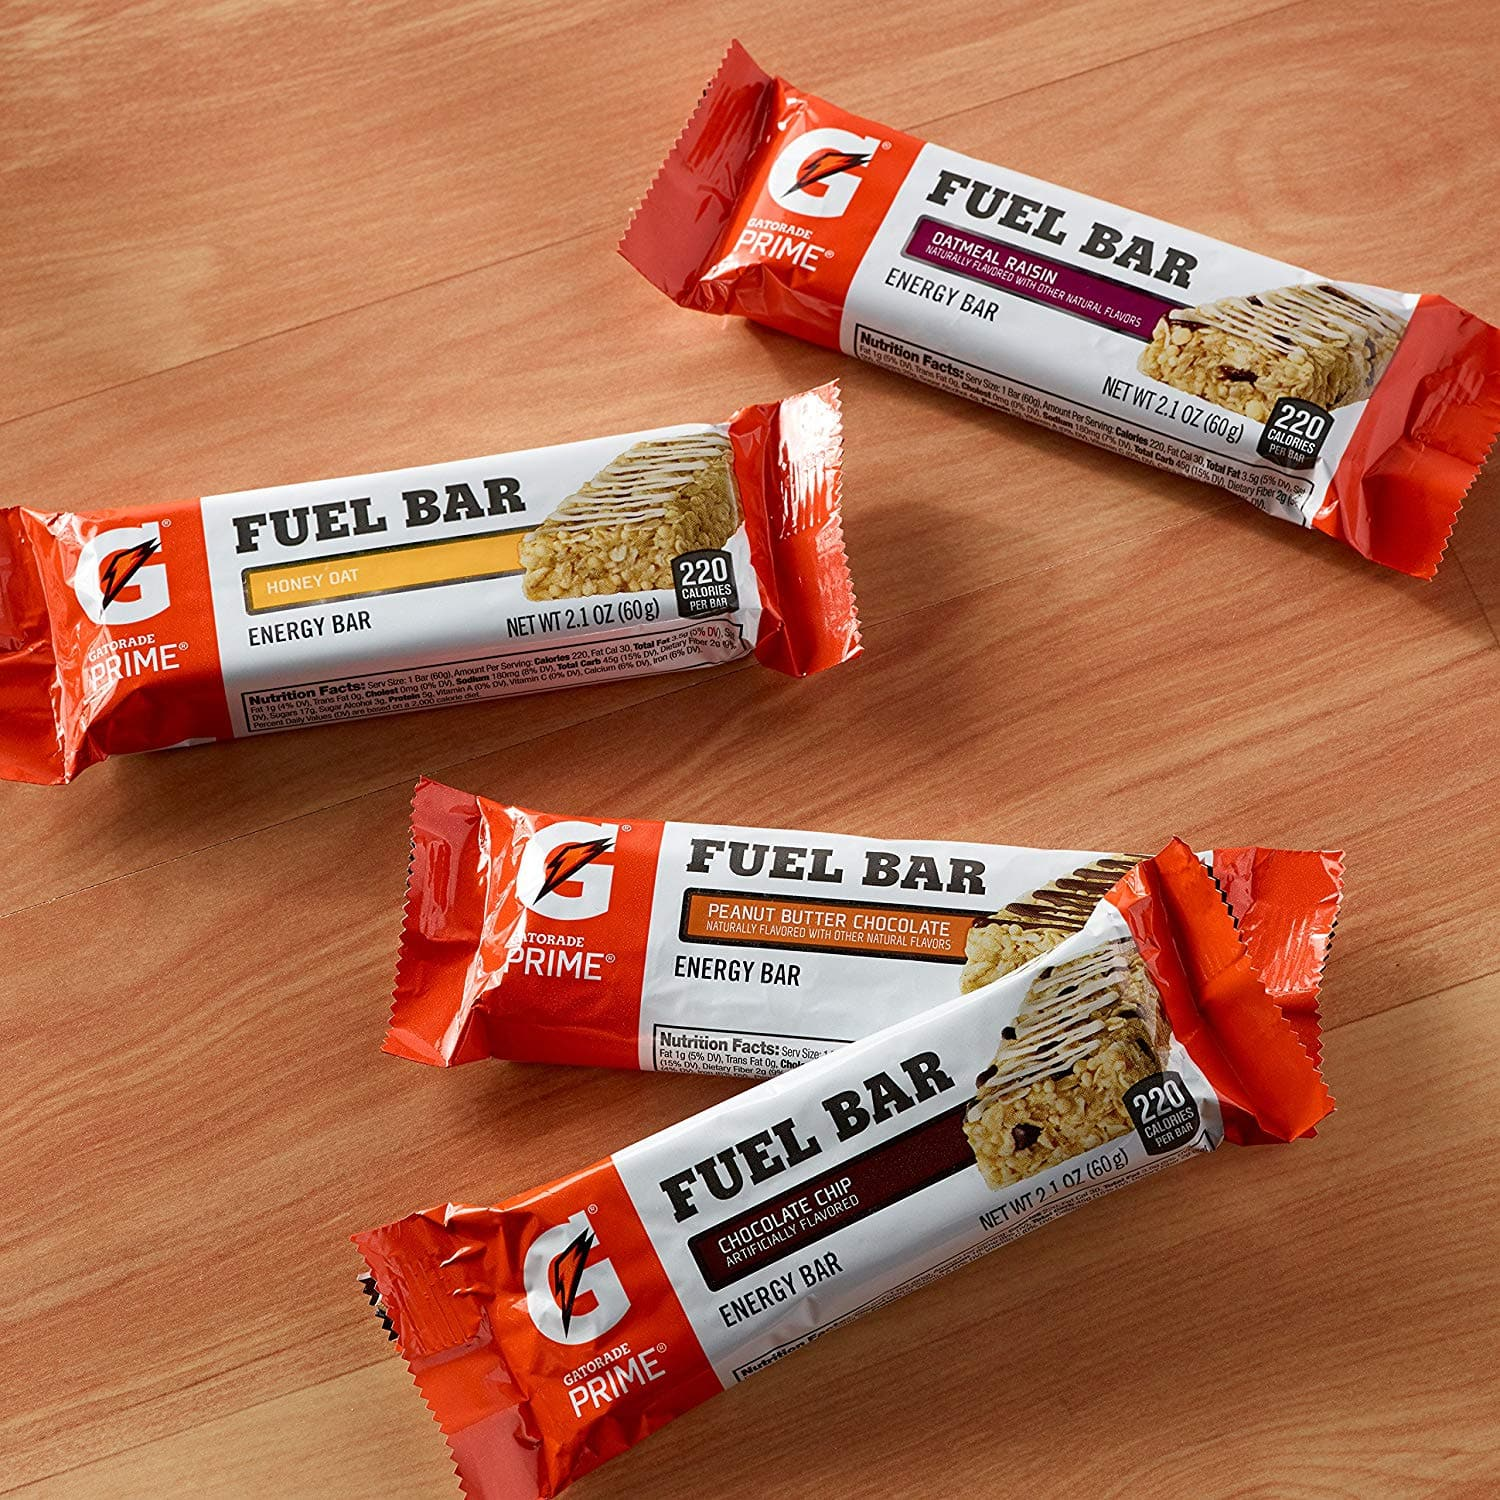 Gatorade Prime Fuel Bar, Chocolate Chip, 45g of carbs, 5g of protein per bar (12 Count), 2.1 oz $9.5